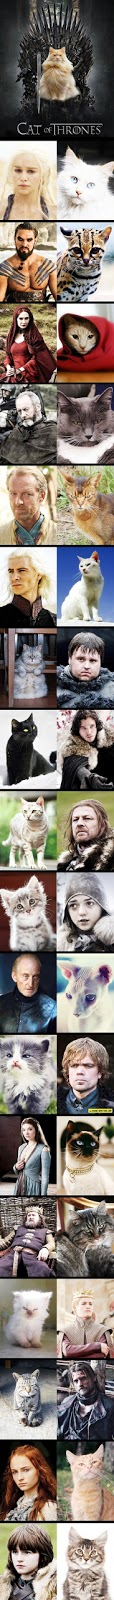 cool-funny-cat-game-thrones-characters